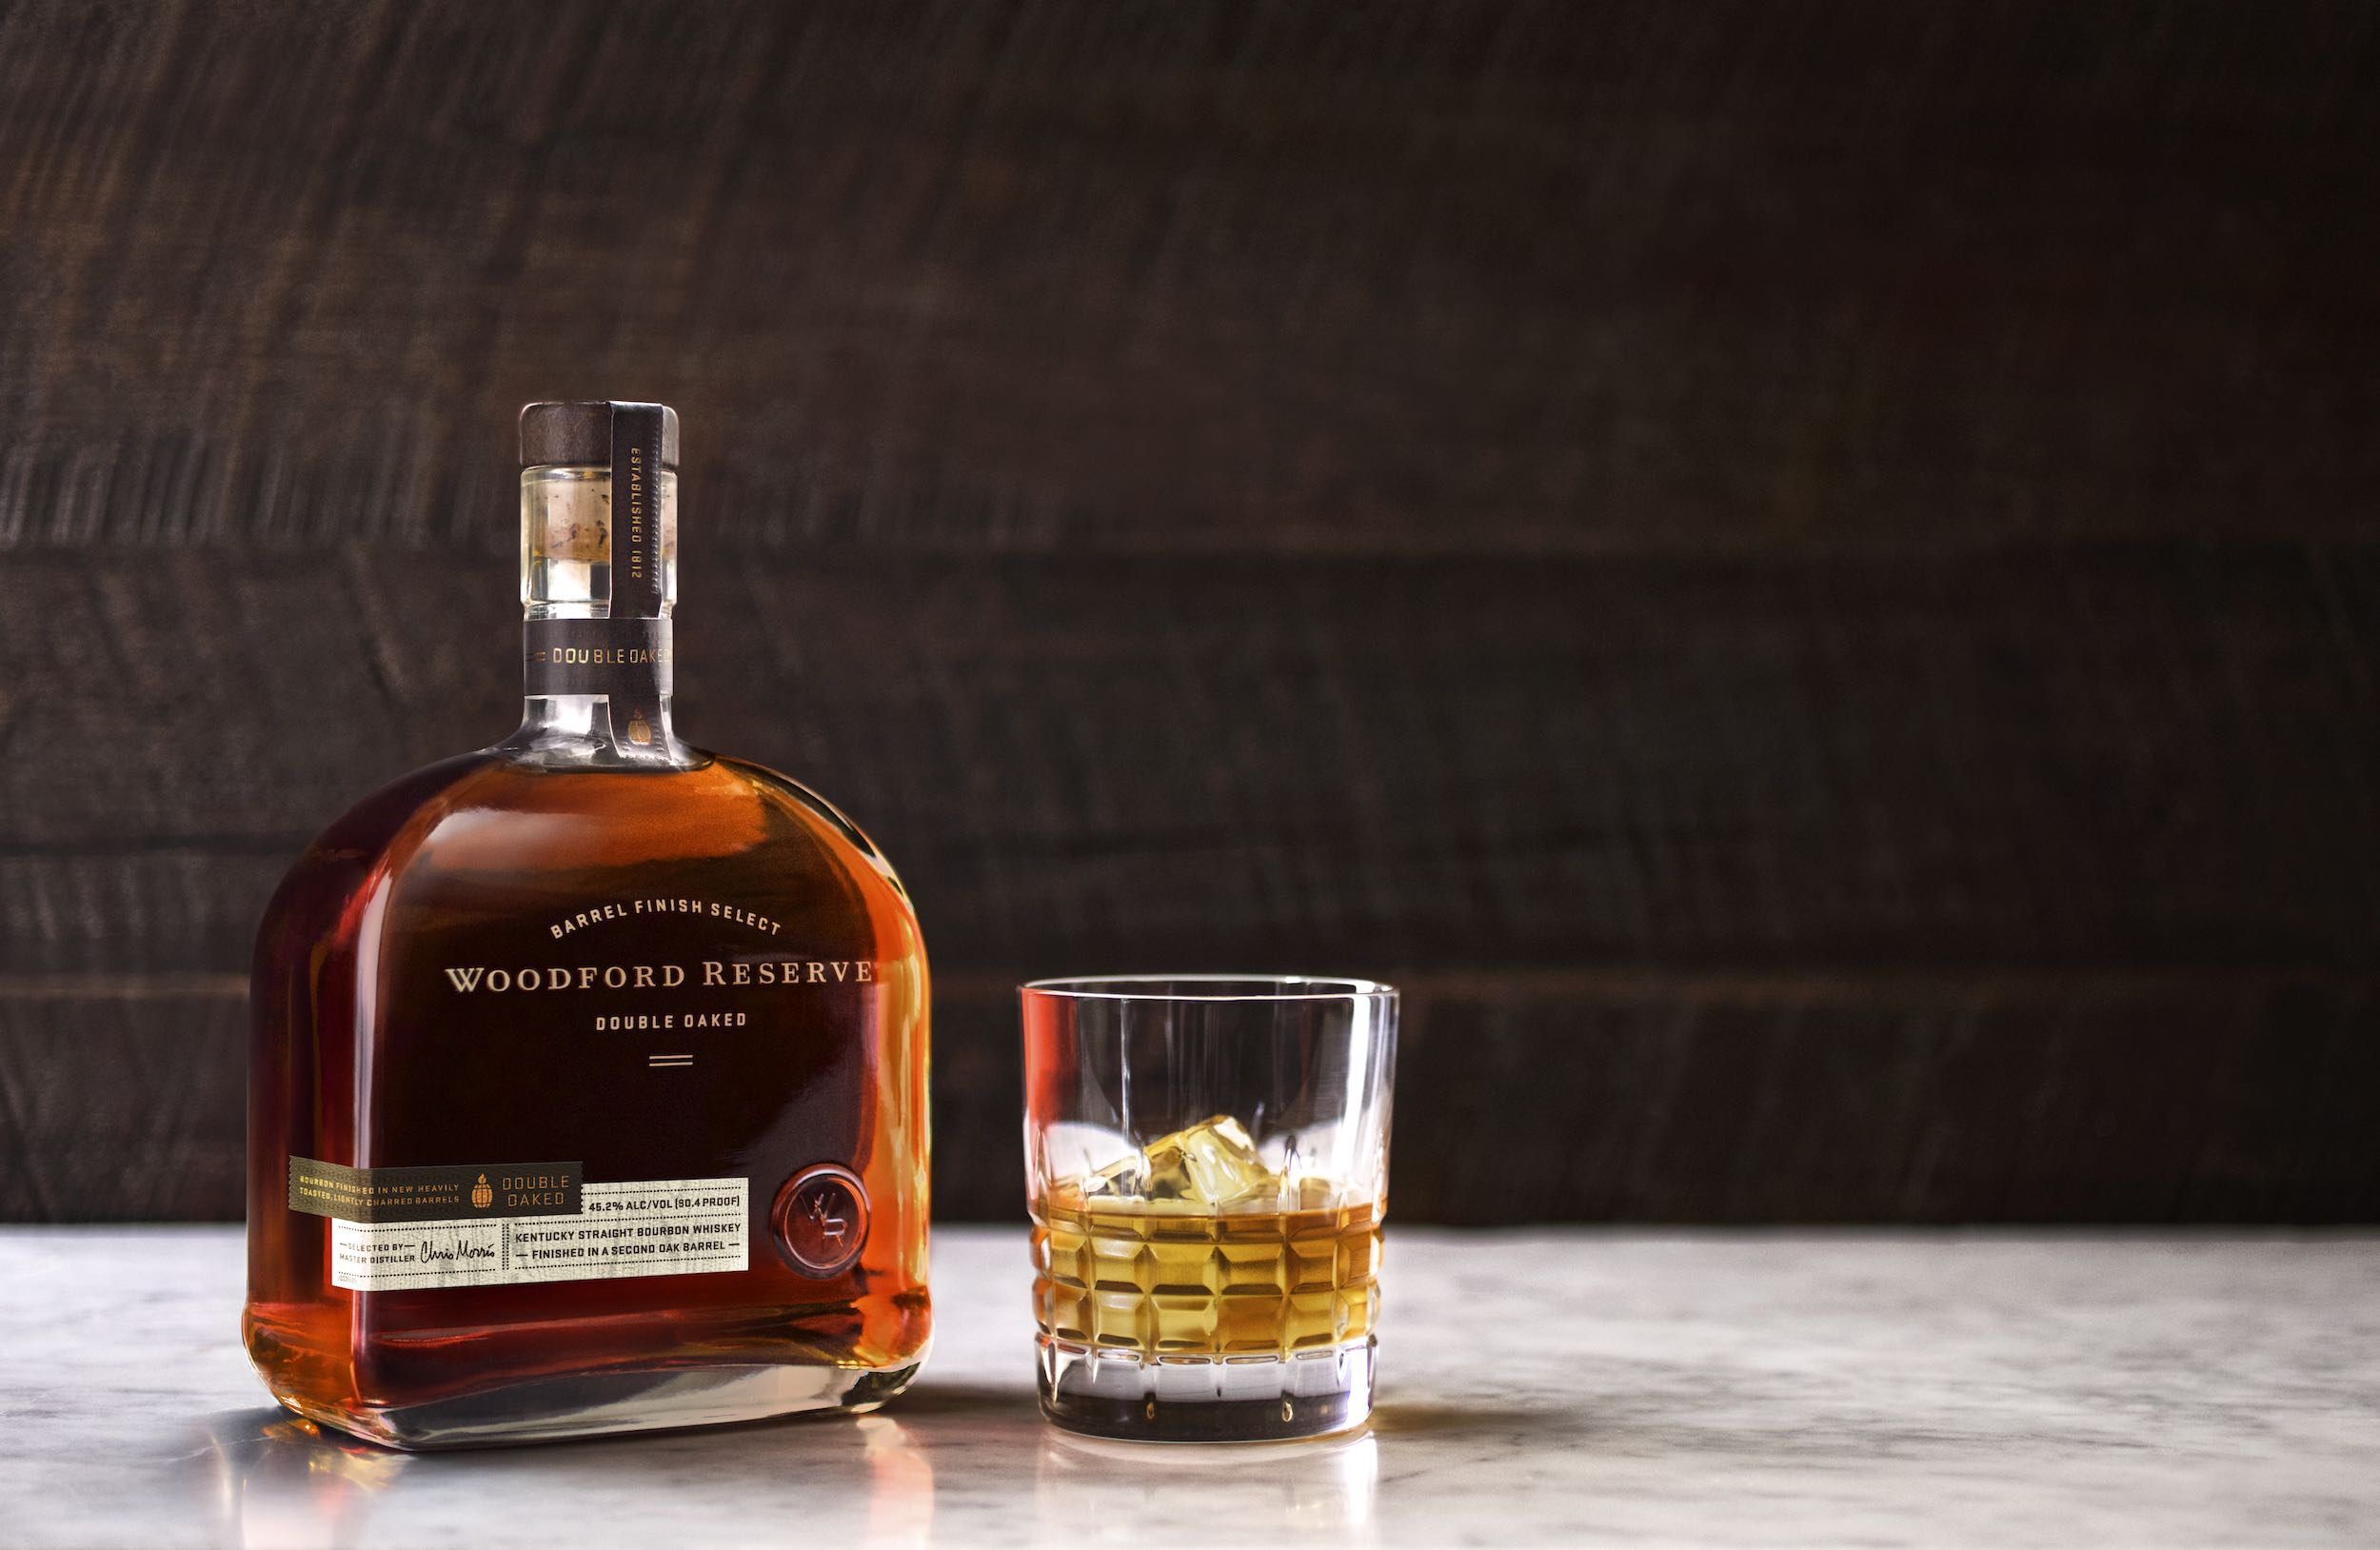 Jody Horton Photography - Woodford Reserve double oaked Bourbon Whiskey Ad with bottle and tumbler on marble surface.